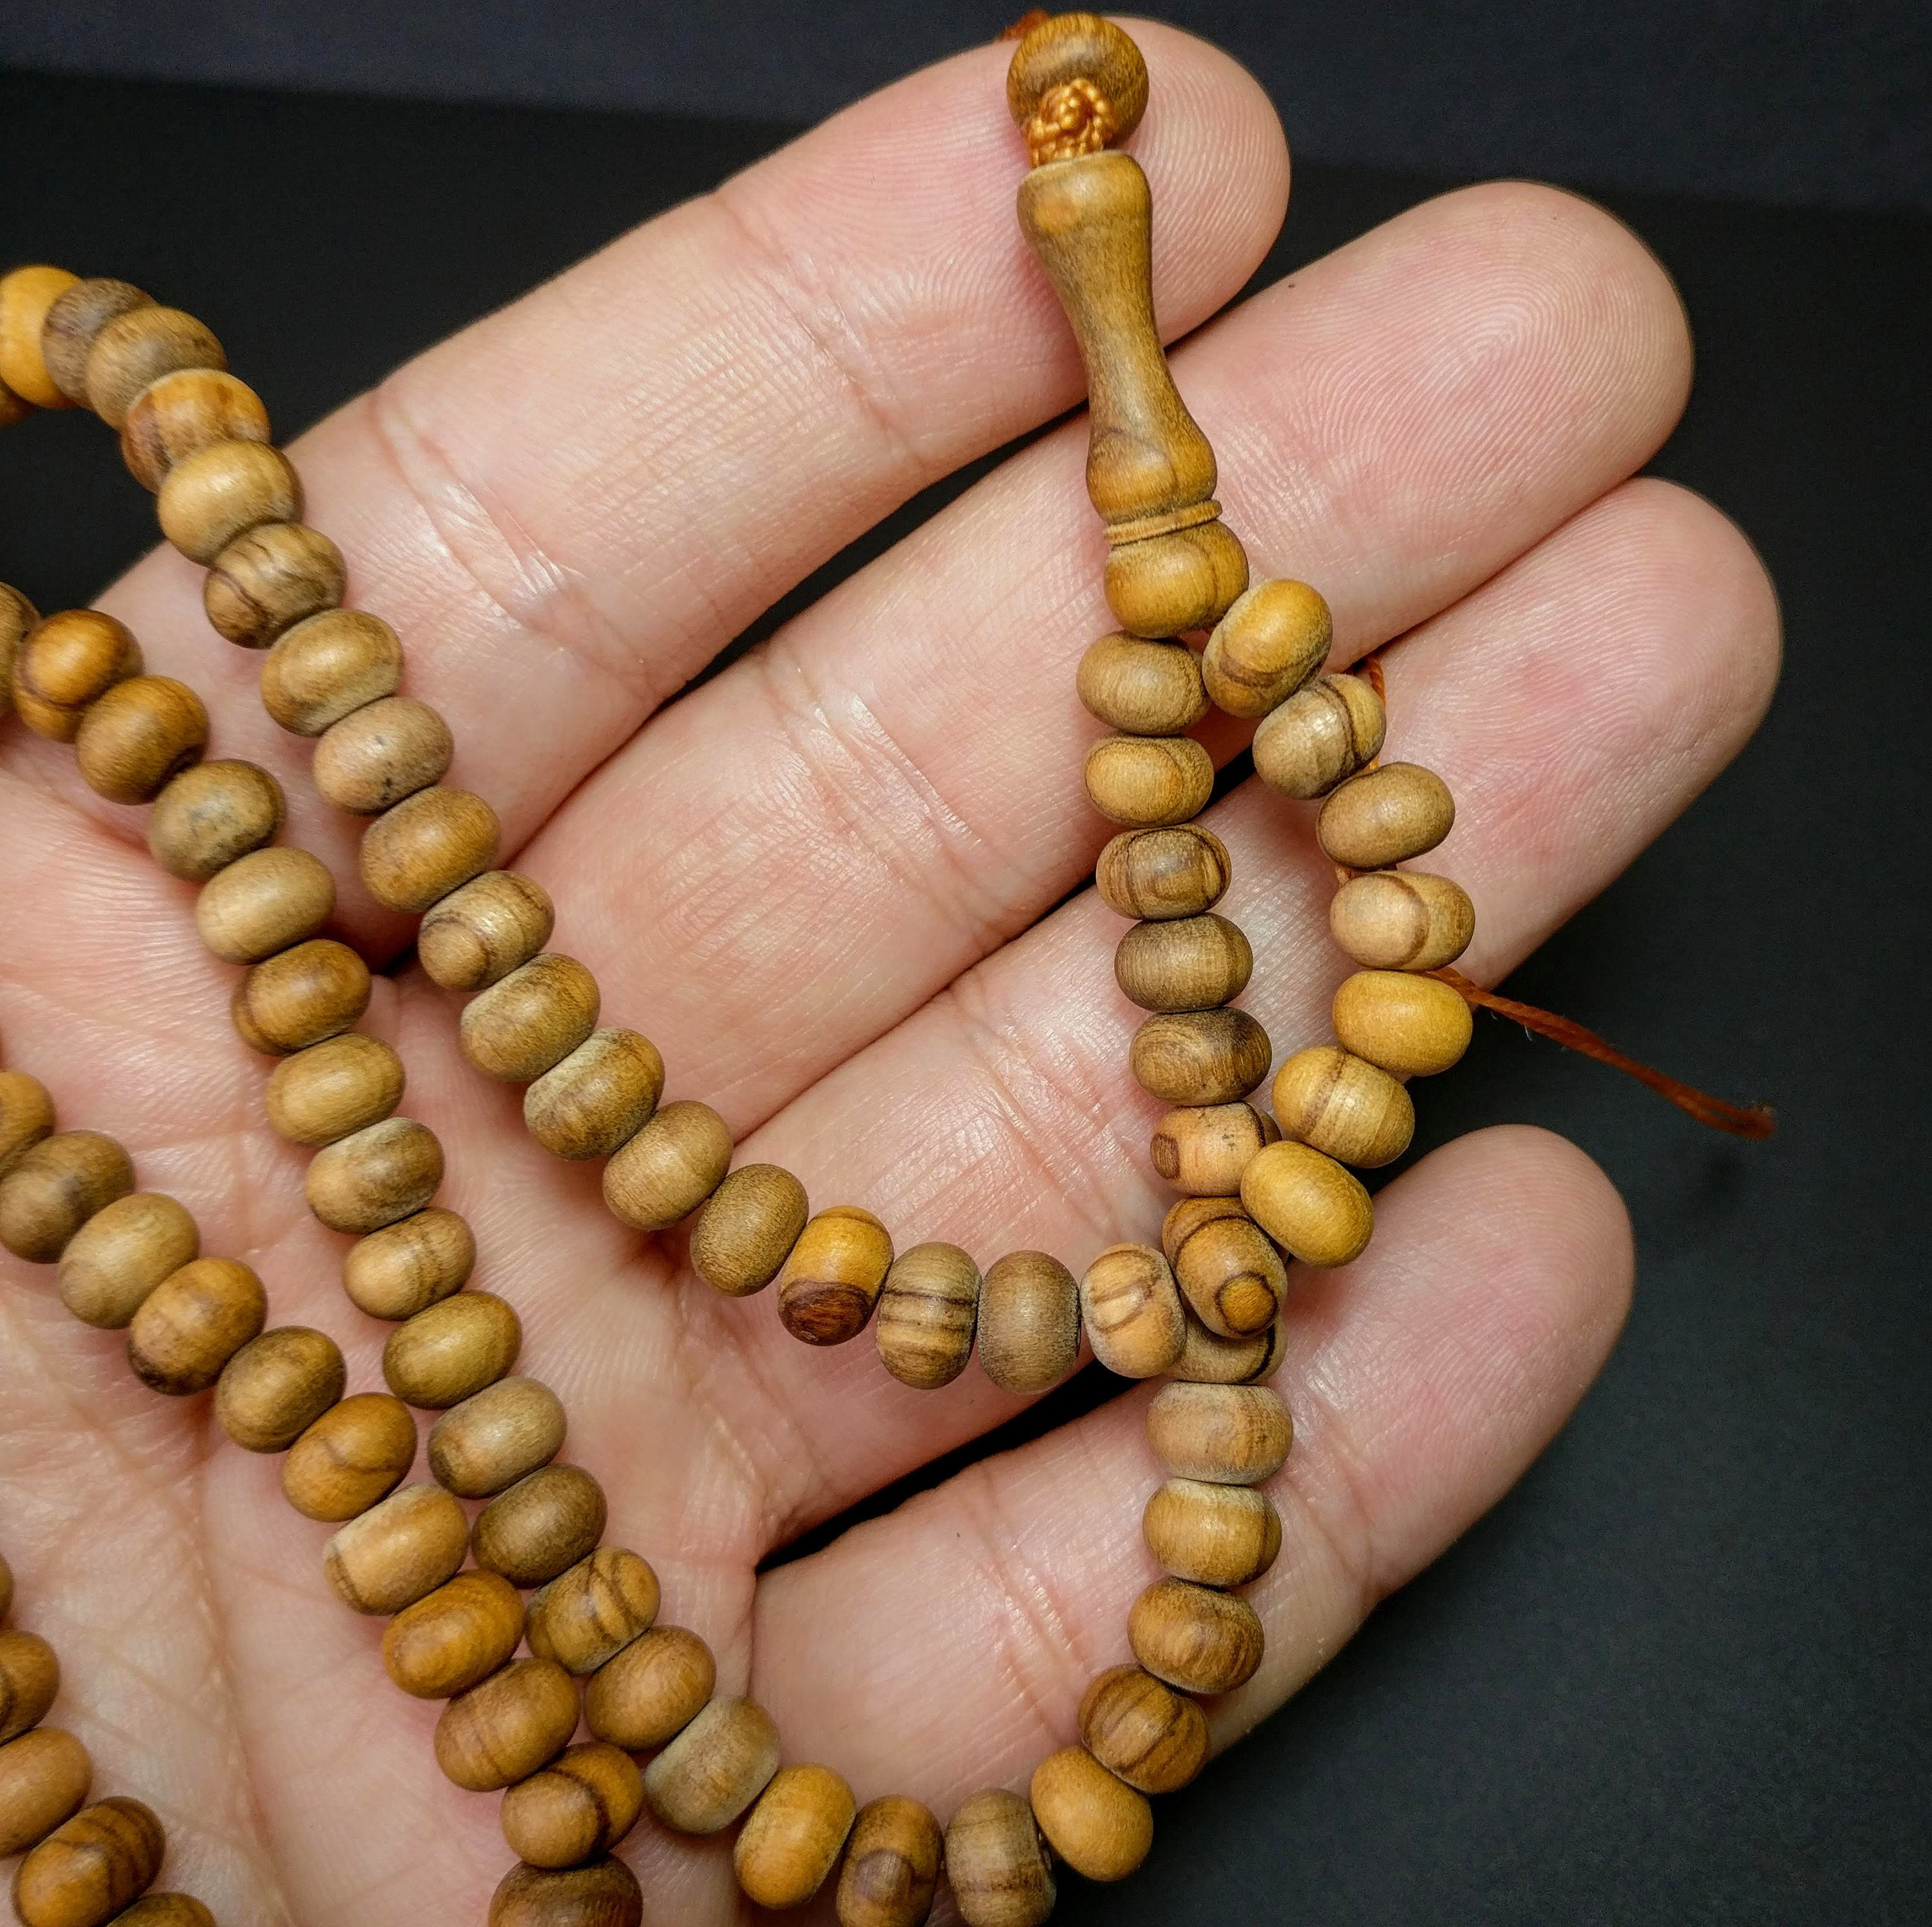 Turkish Olive tree Prayer Beads, Dua Tasbih, Tesbih, Misbaha, Worry Beads, Dhikr, Zaytun 99 beads, Zikr Tasbeeh (natural polished) 279